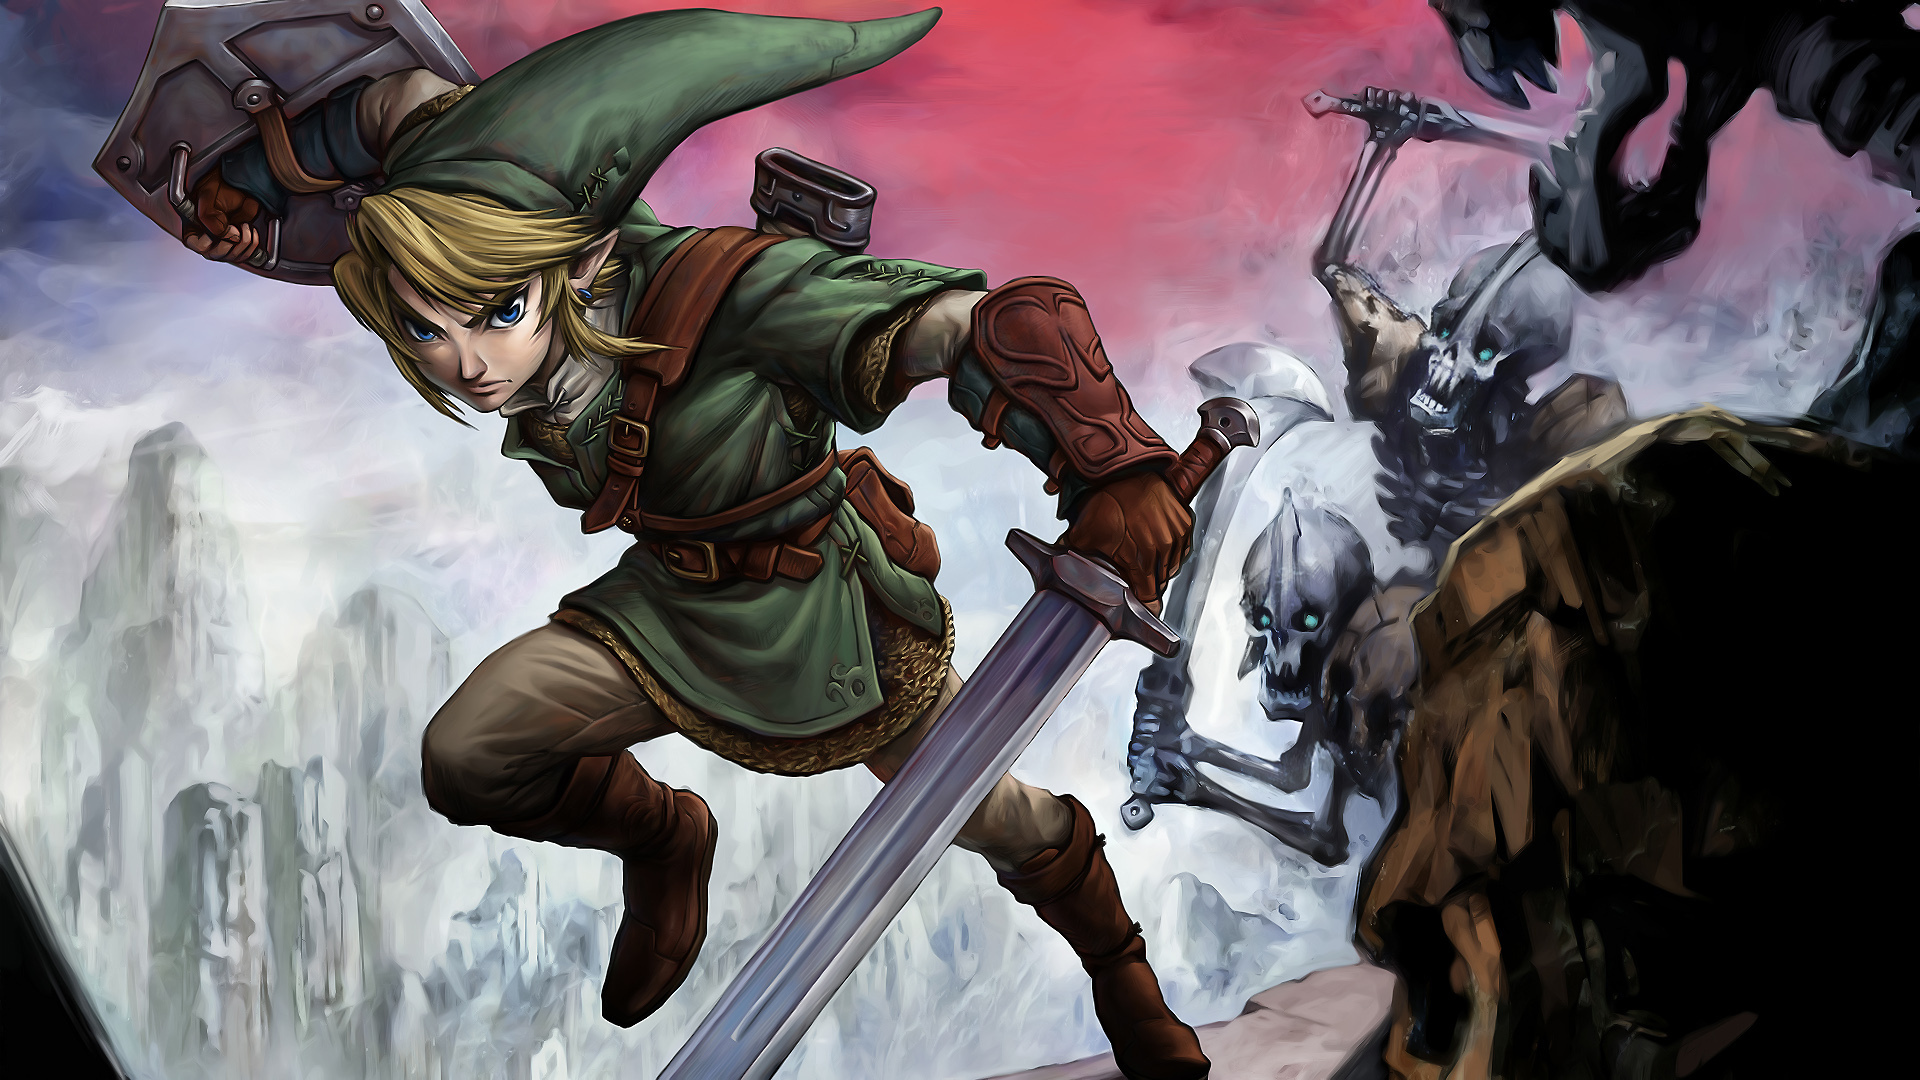 Download Wallpaper 1920x1080 Link Zelda Battle Elf Full HD 1080p HD 1920x1080